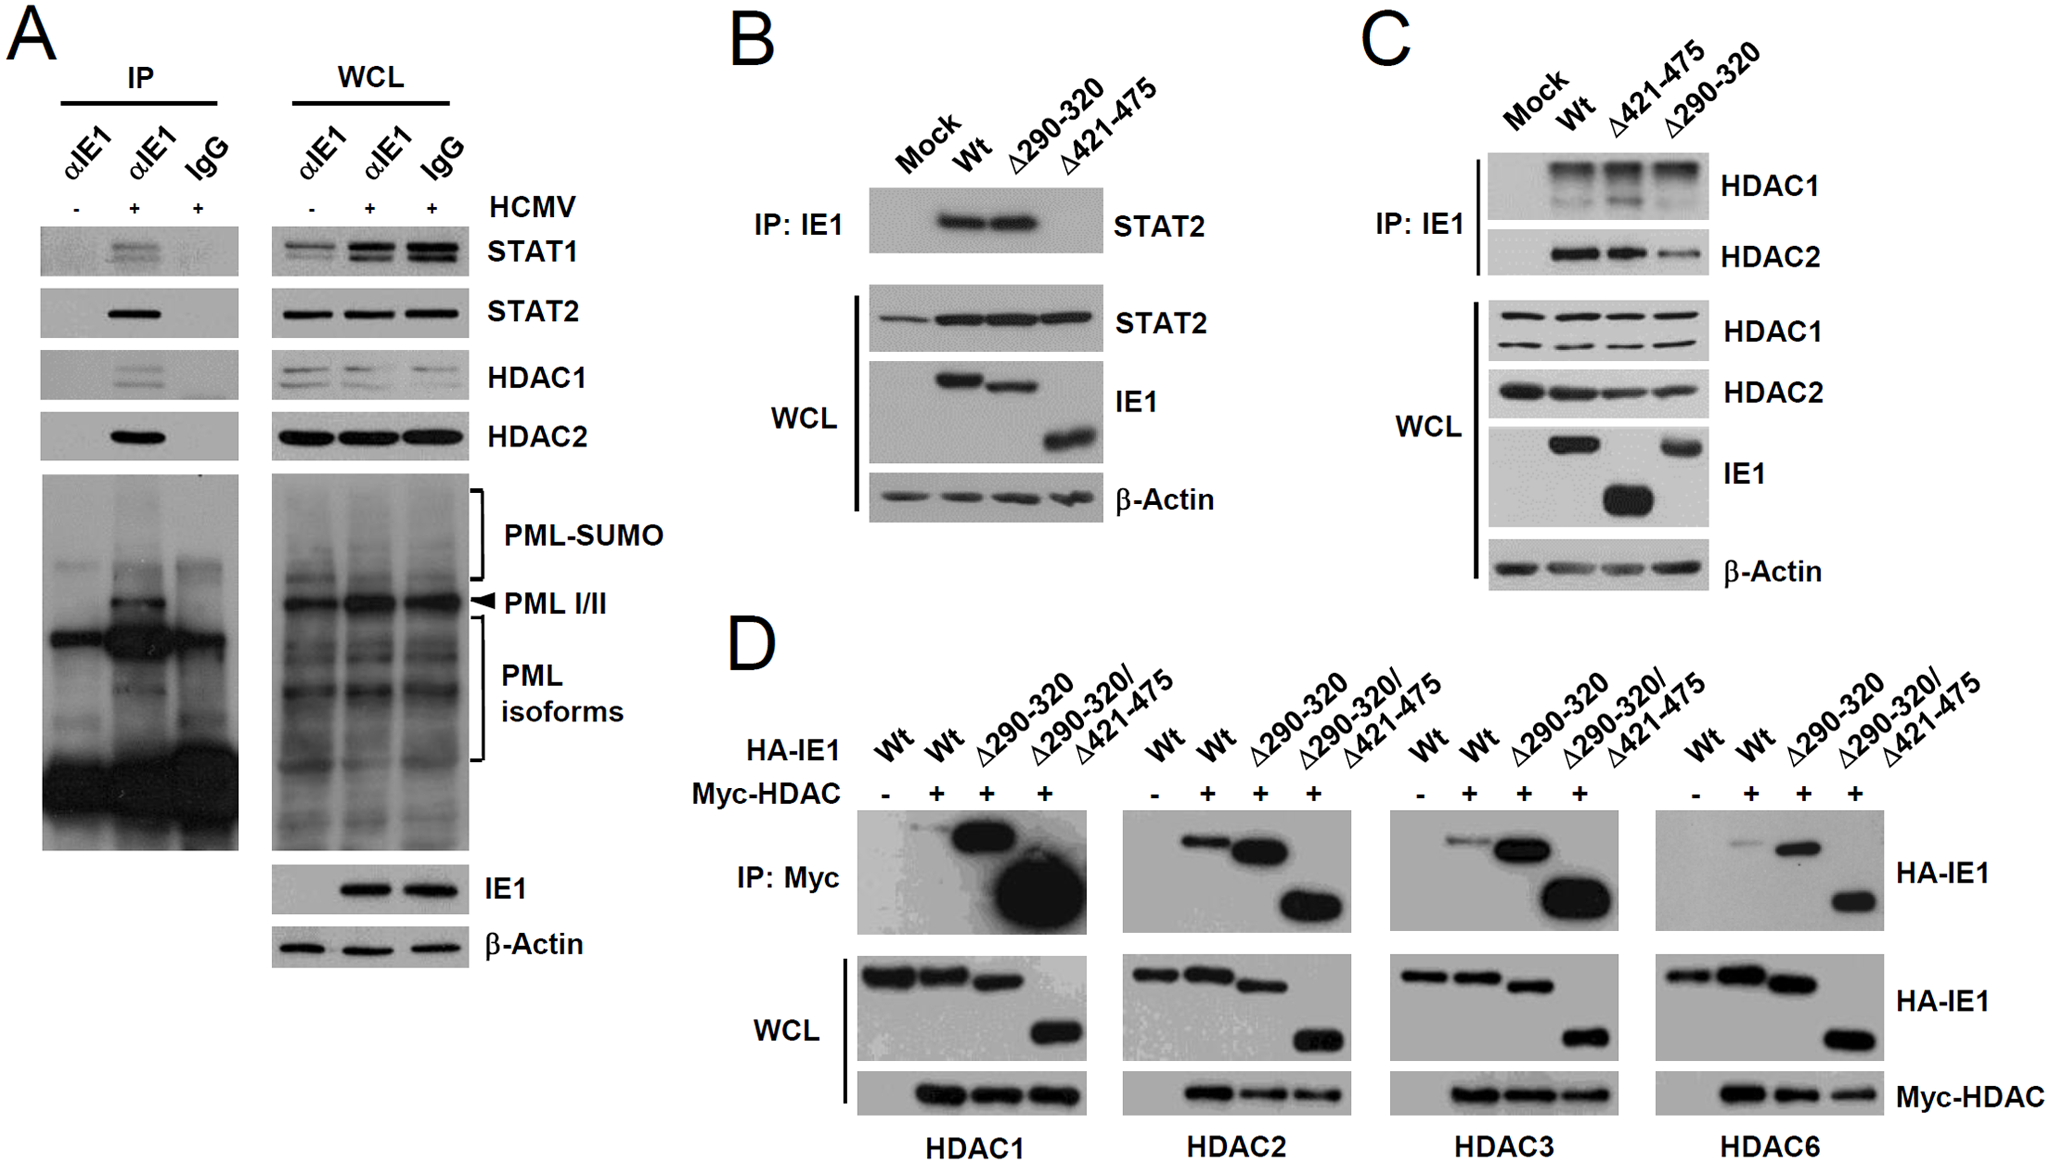 Association of IE1 with STAT1, STAT2, HDAC1, HDAC2, and PML during infection and the binding of IE1(Δ290–320) with STAT2 and HDACs.